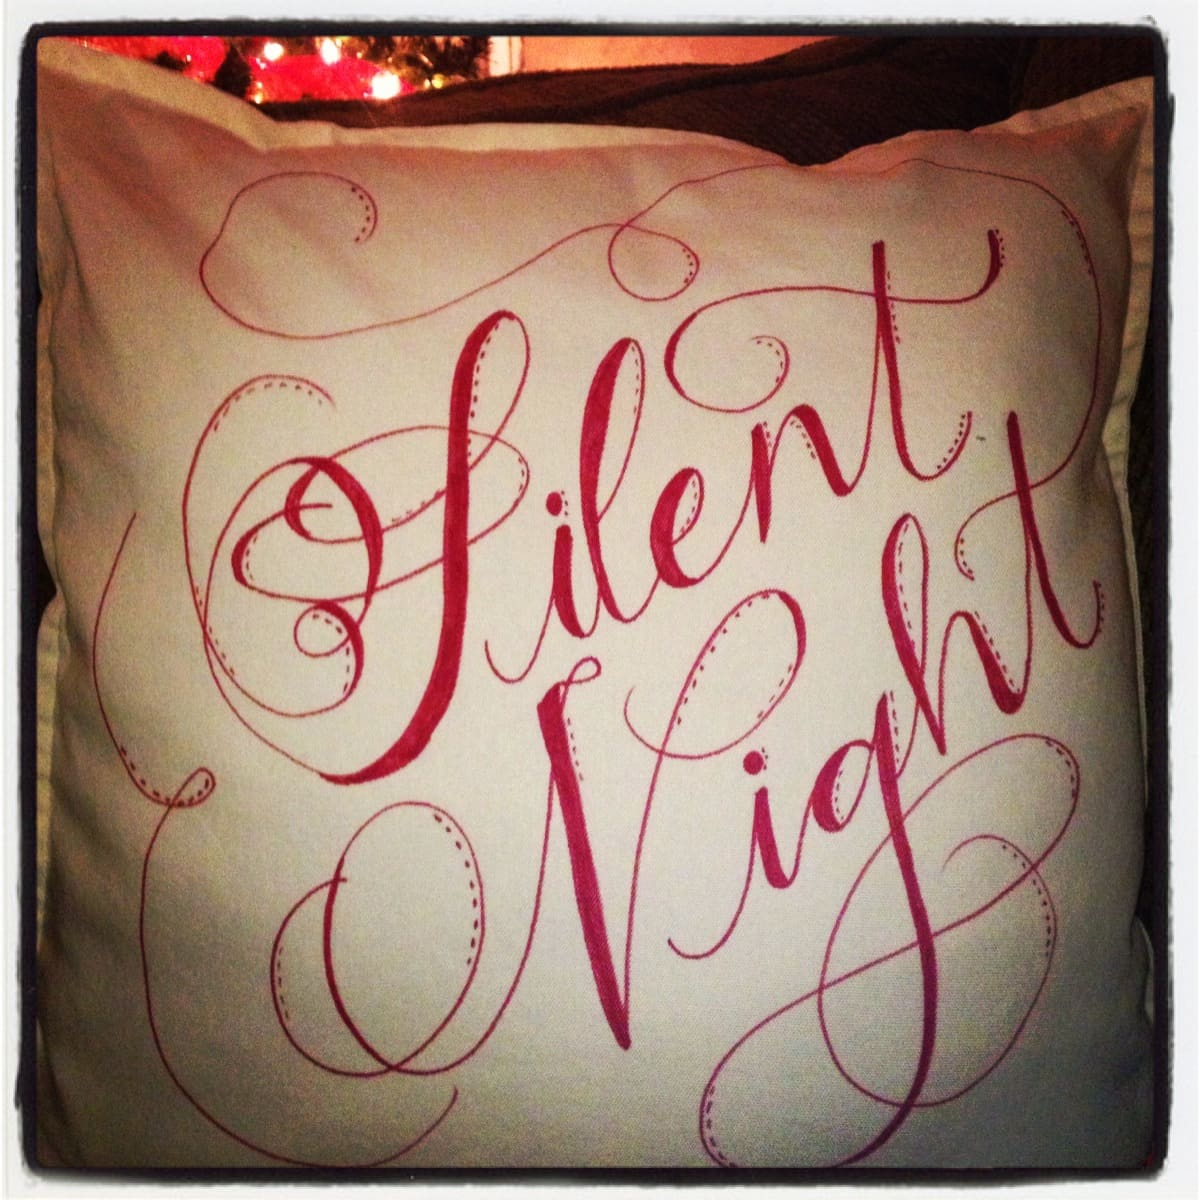 Easiest project ever and great design ideas! via maisondepax.com #sharpie #christmas #pillow #DIY